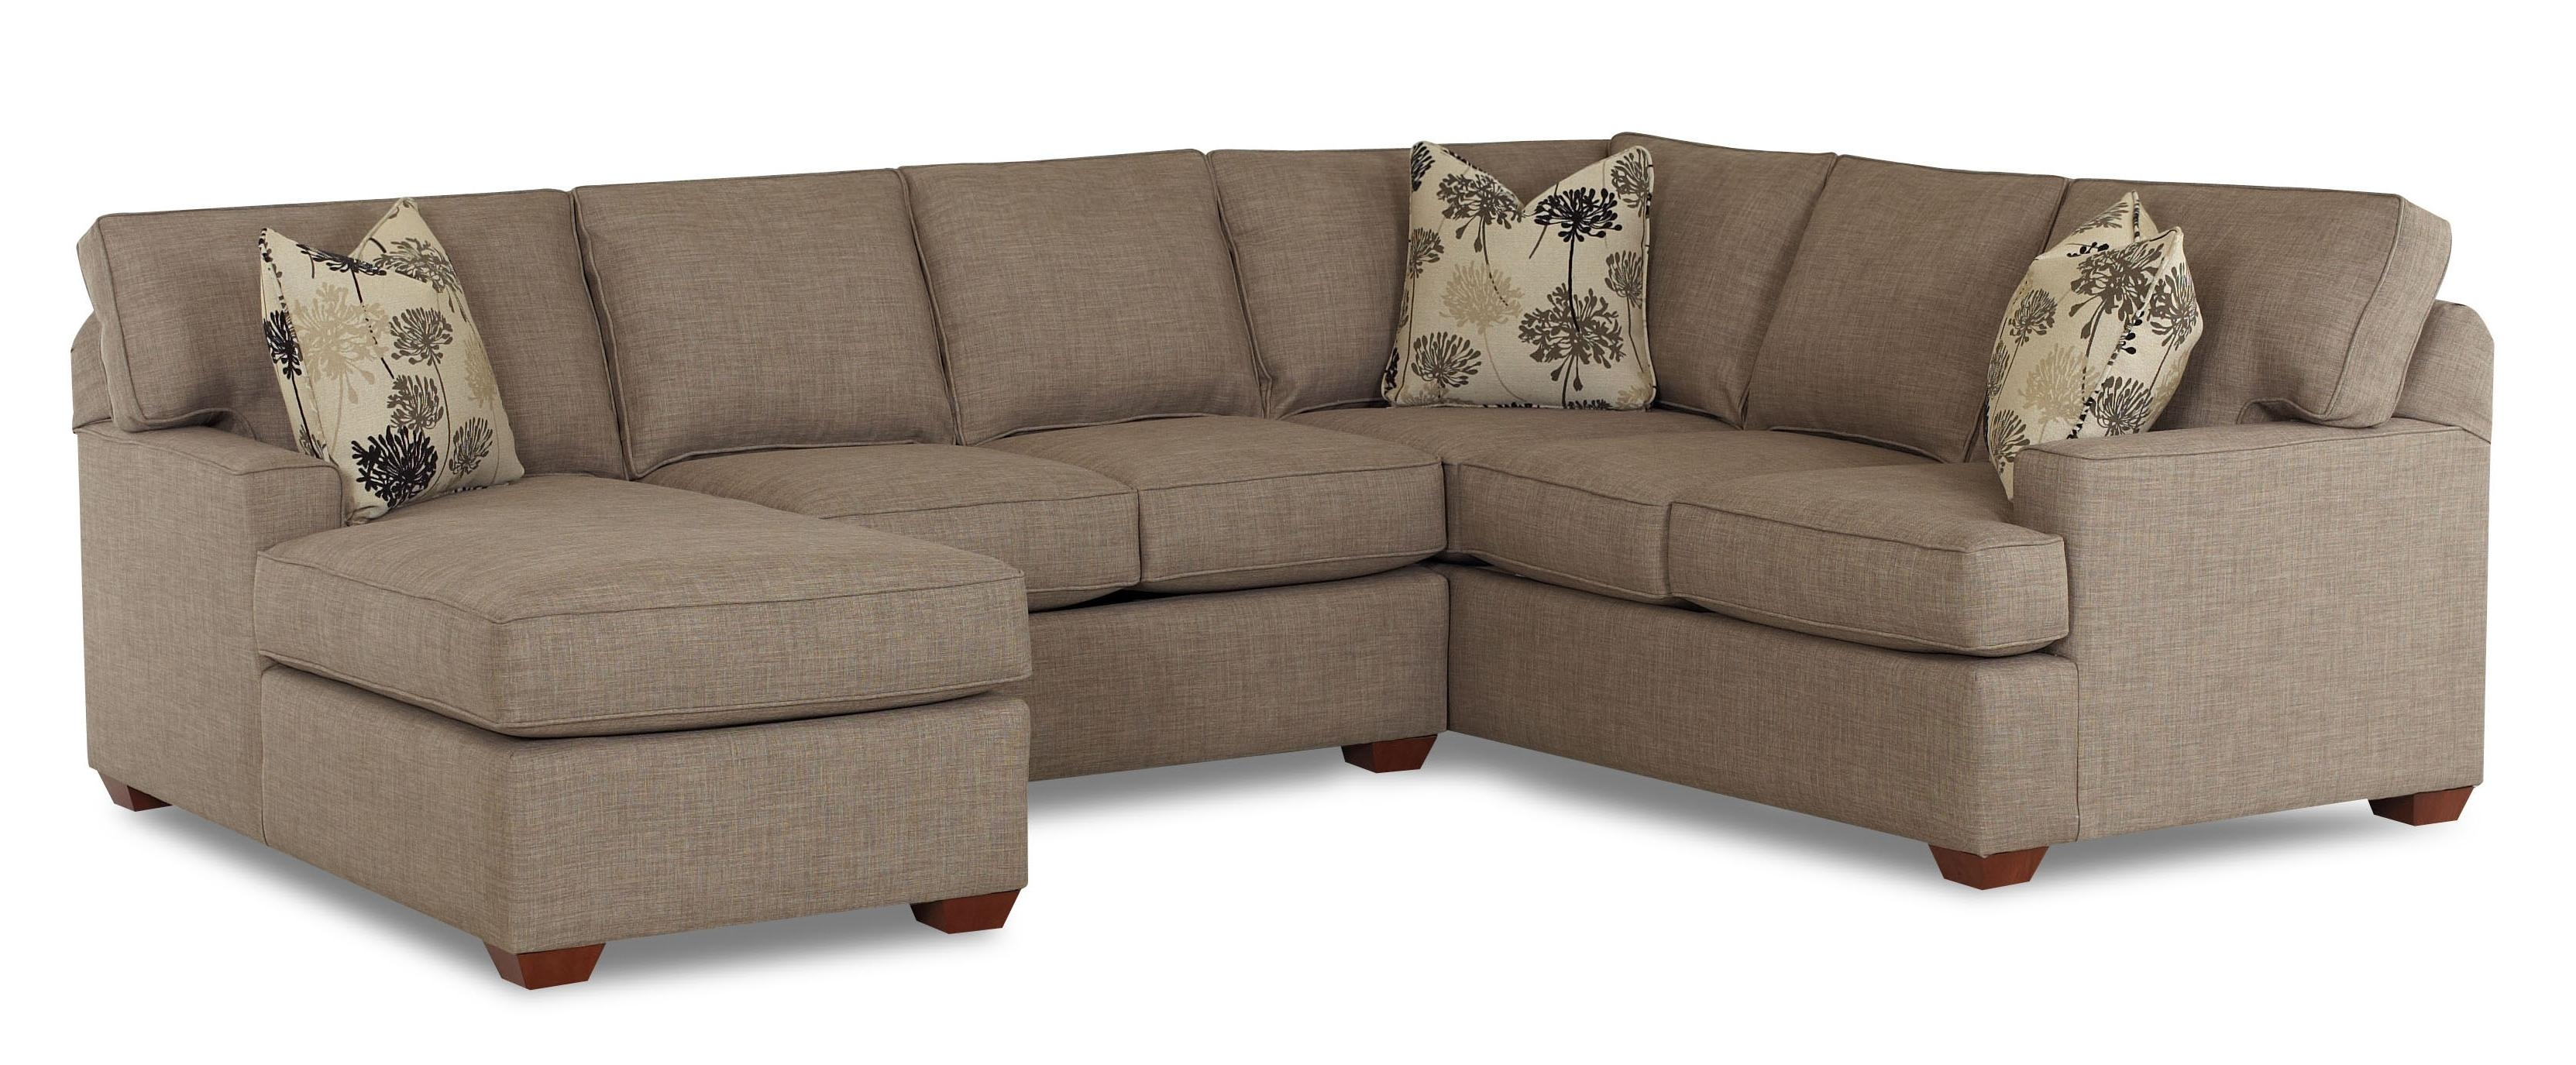 Pantego 3 Piece Sectional Sofa With Raf Chaiseklaussner | Home Inside Nova Scotia Sectional Sofas (View 5 of 10)